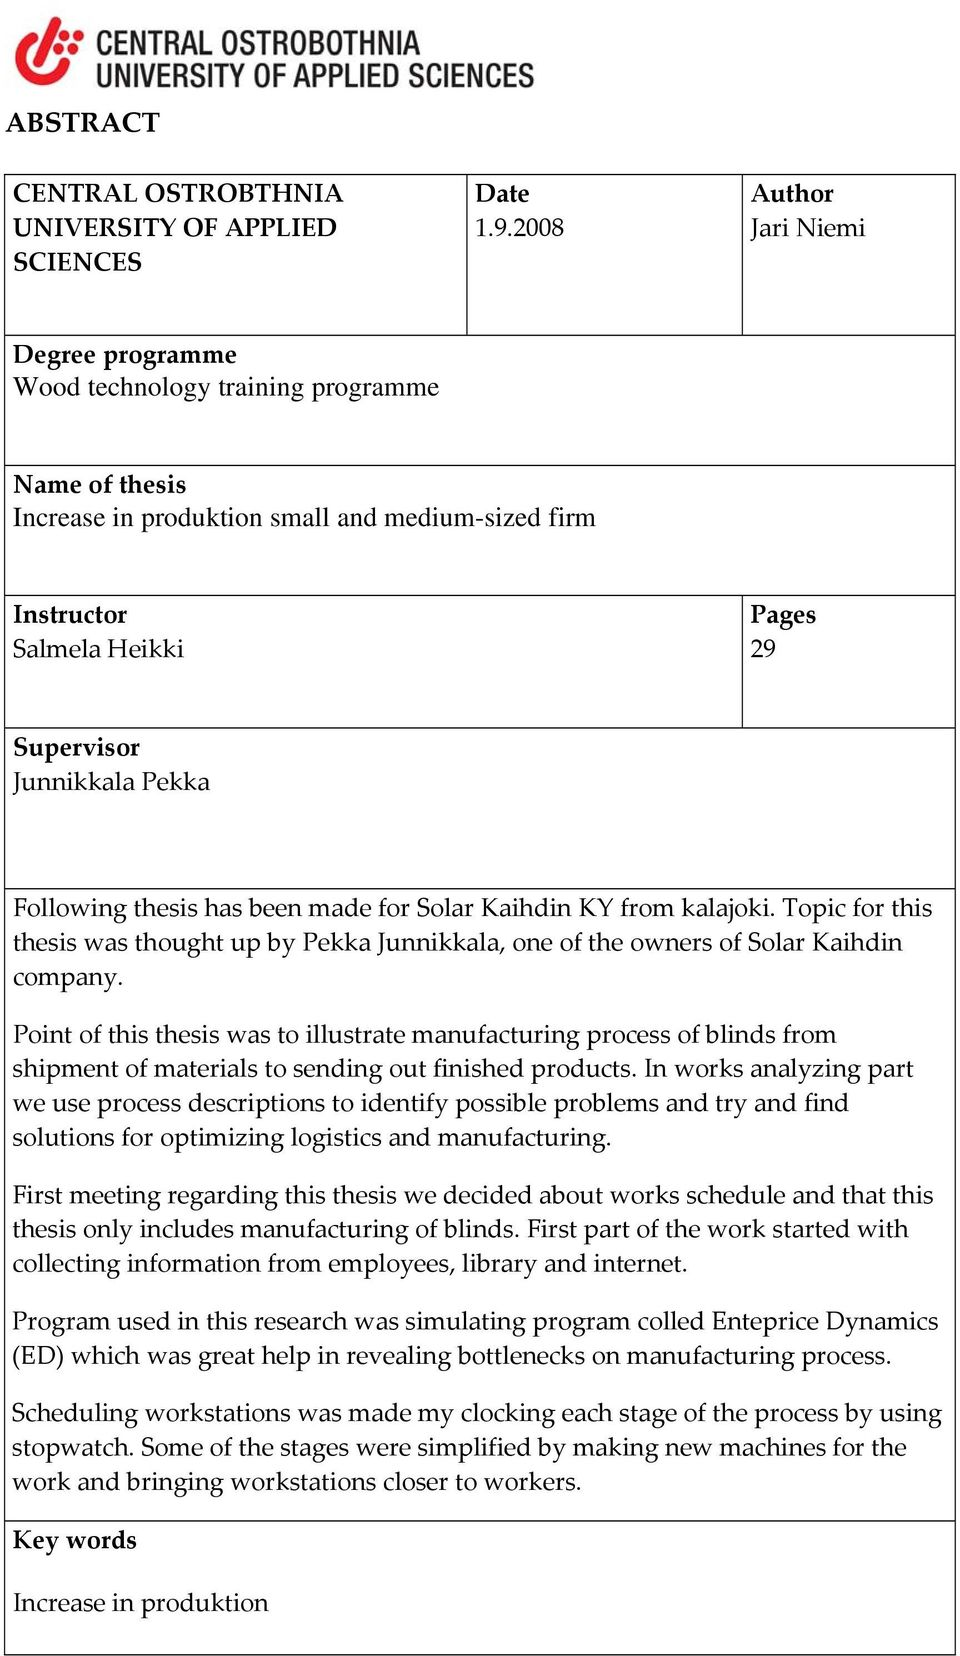 Pekka Following thesis has been made for Solar Kaihdin KY from kalajoki. Topic for this thesis was thought up by Pekka Junnikkala, one of the owners of Solar Kaihdin company.